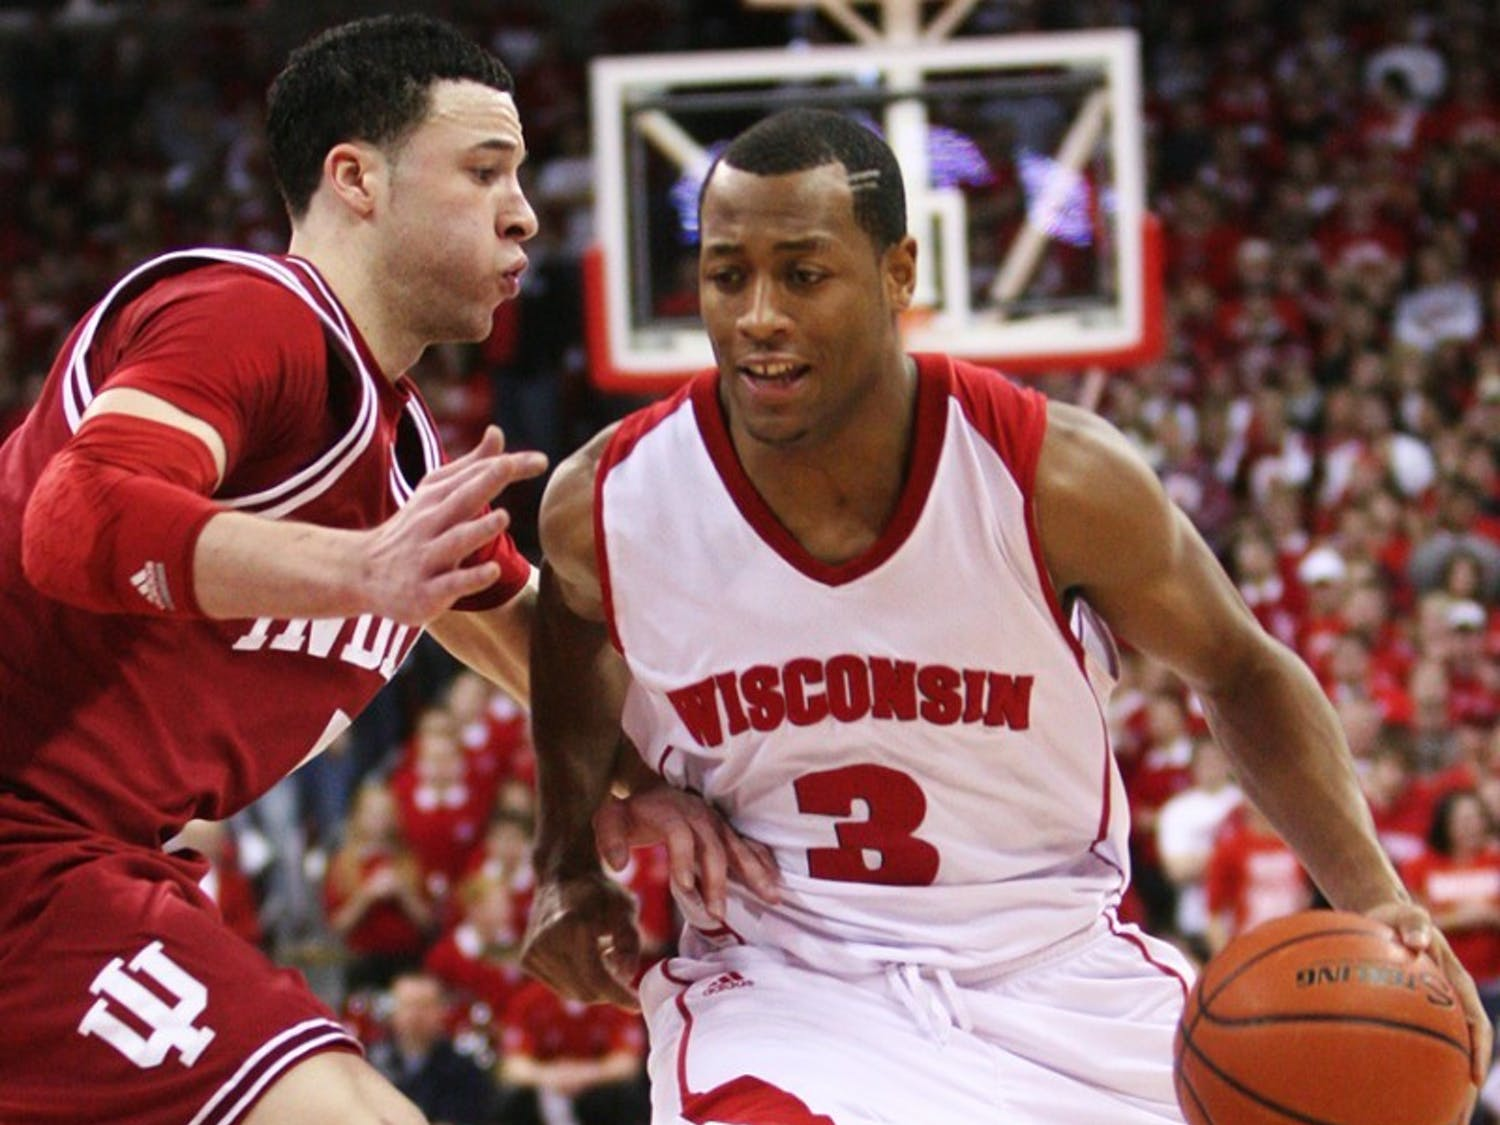 Tall Gophers could pose problems for Ryan, UW